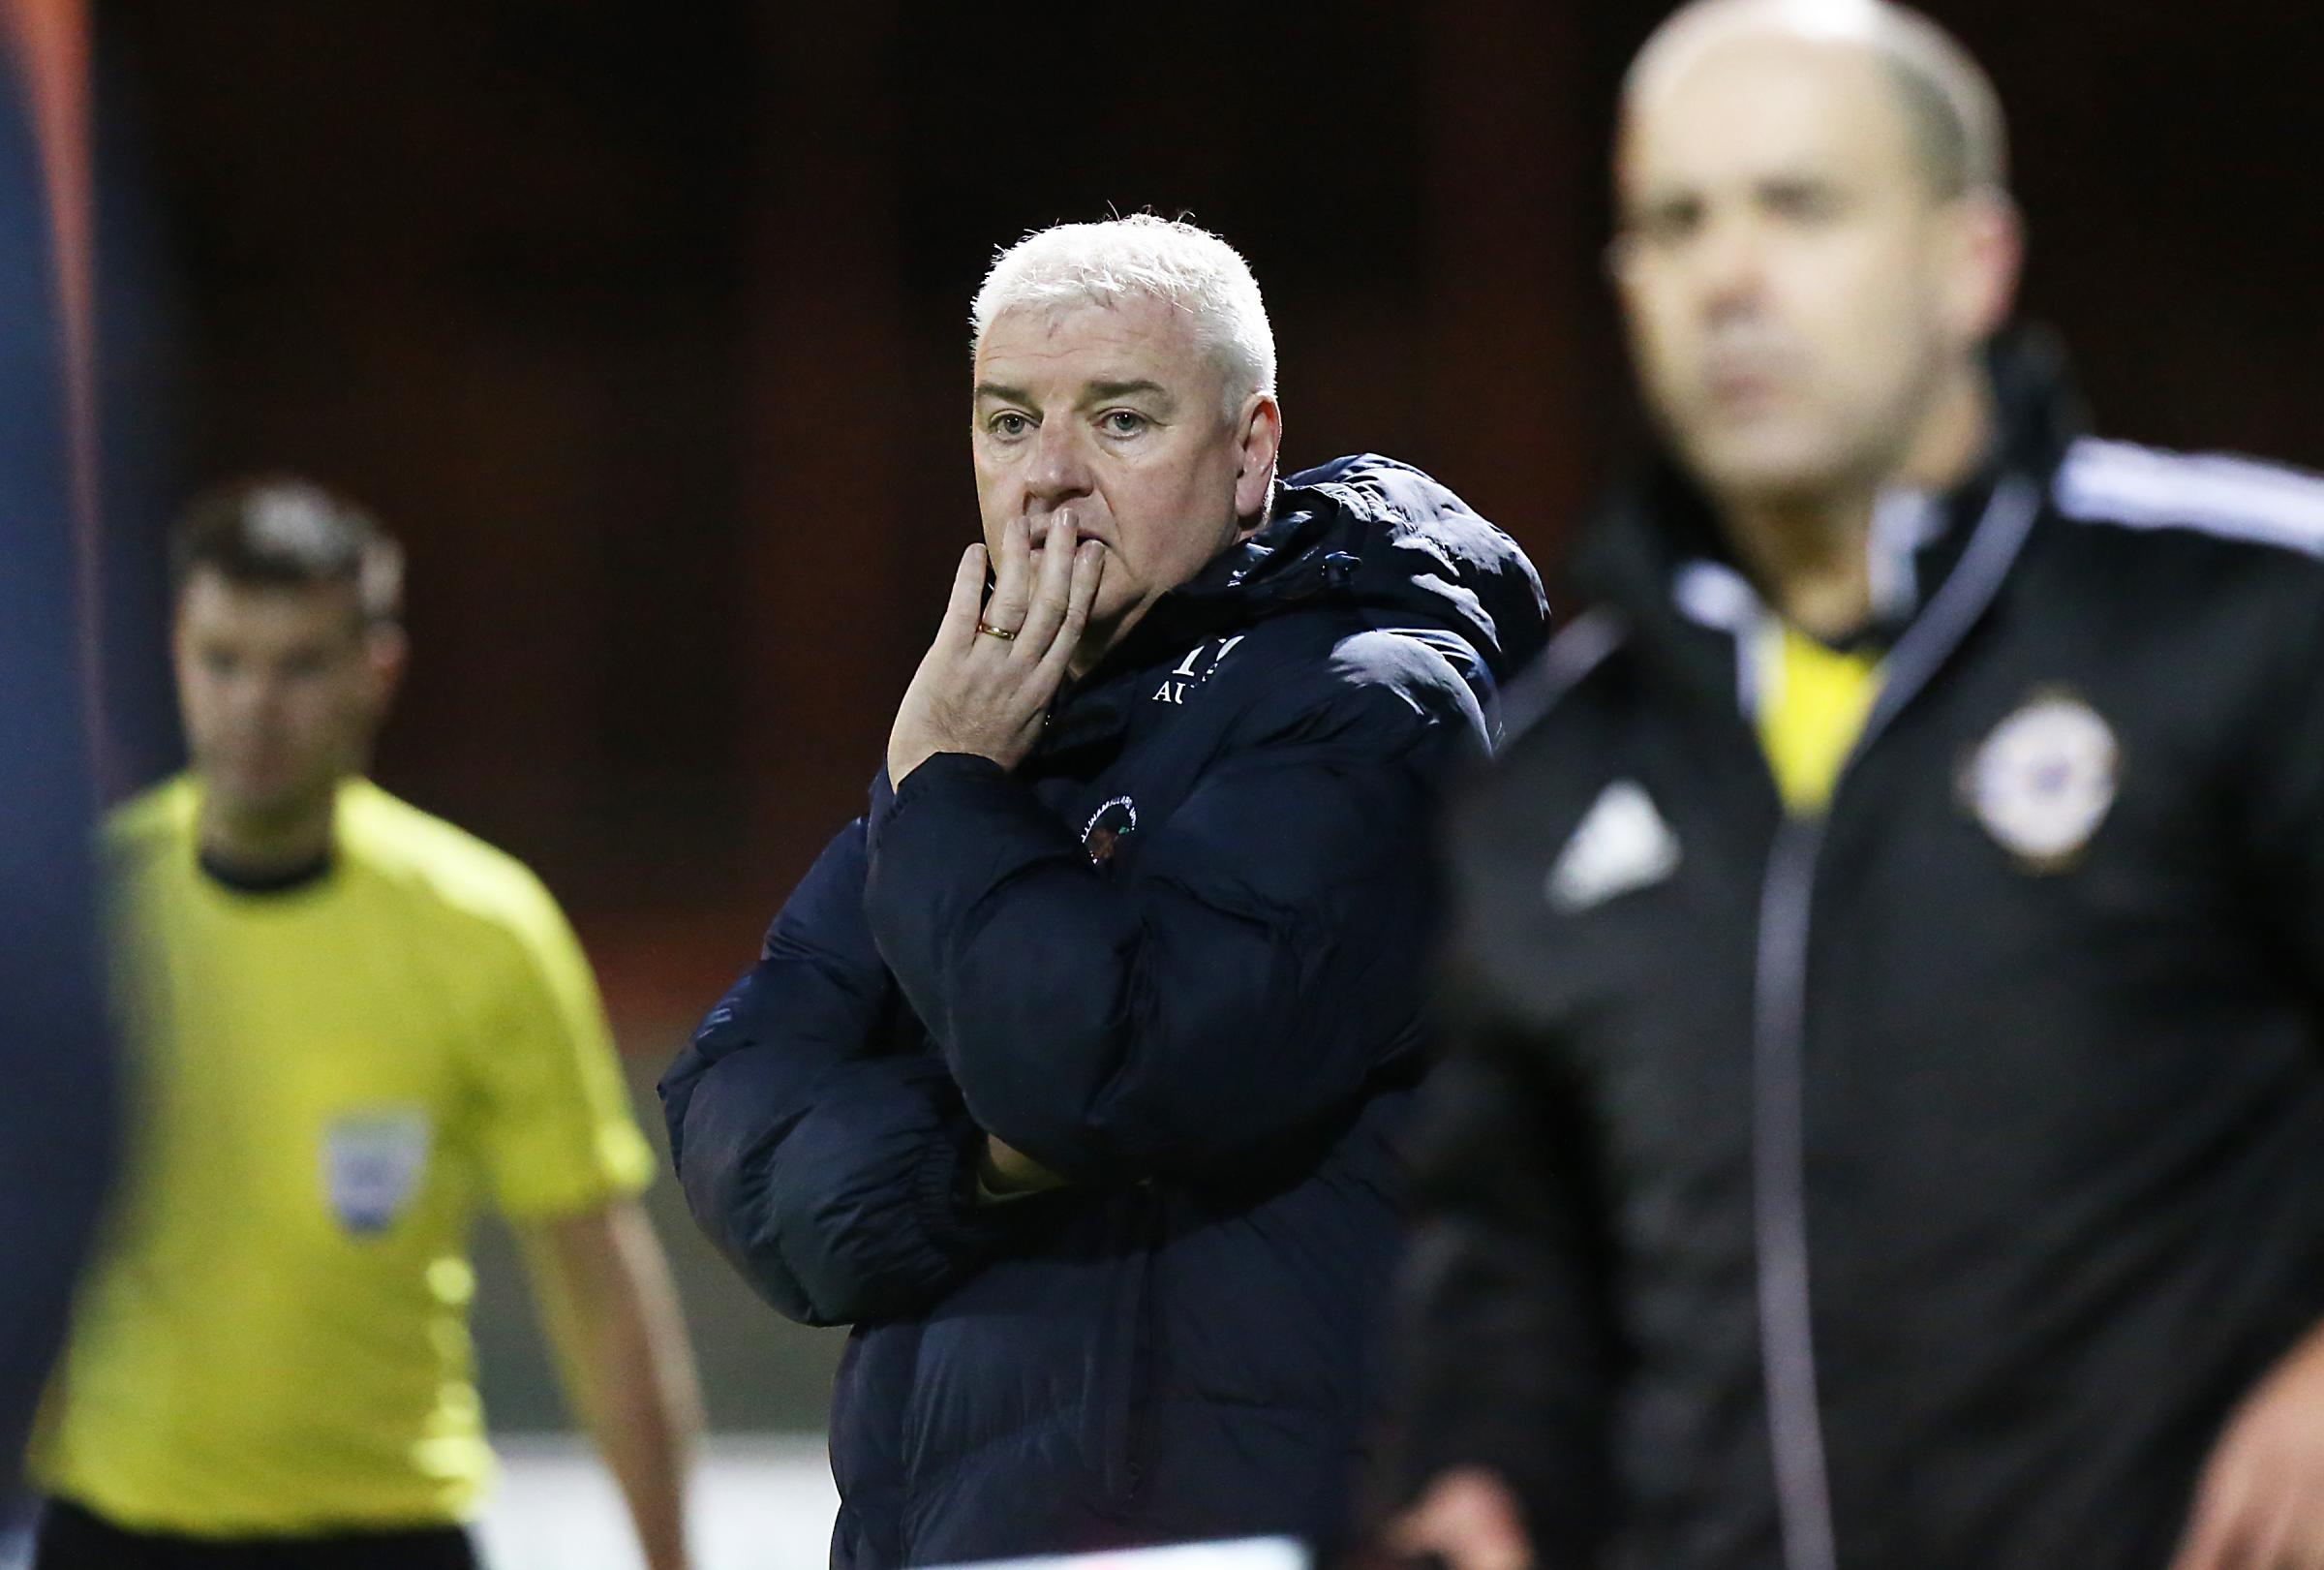 Ballinamallard manager Gavin Dykes watches on anxiously during Friday's encounter against Warrenpoint.